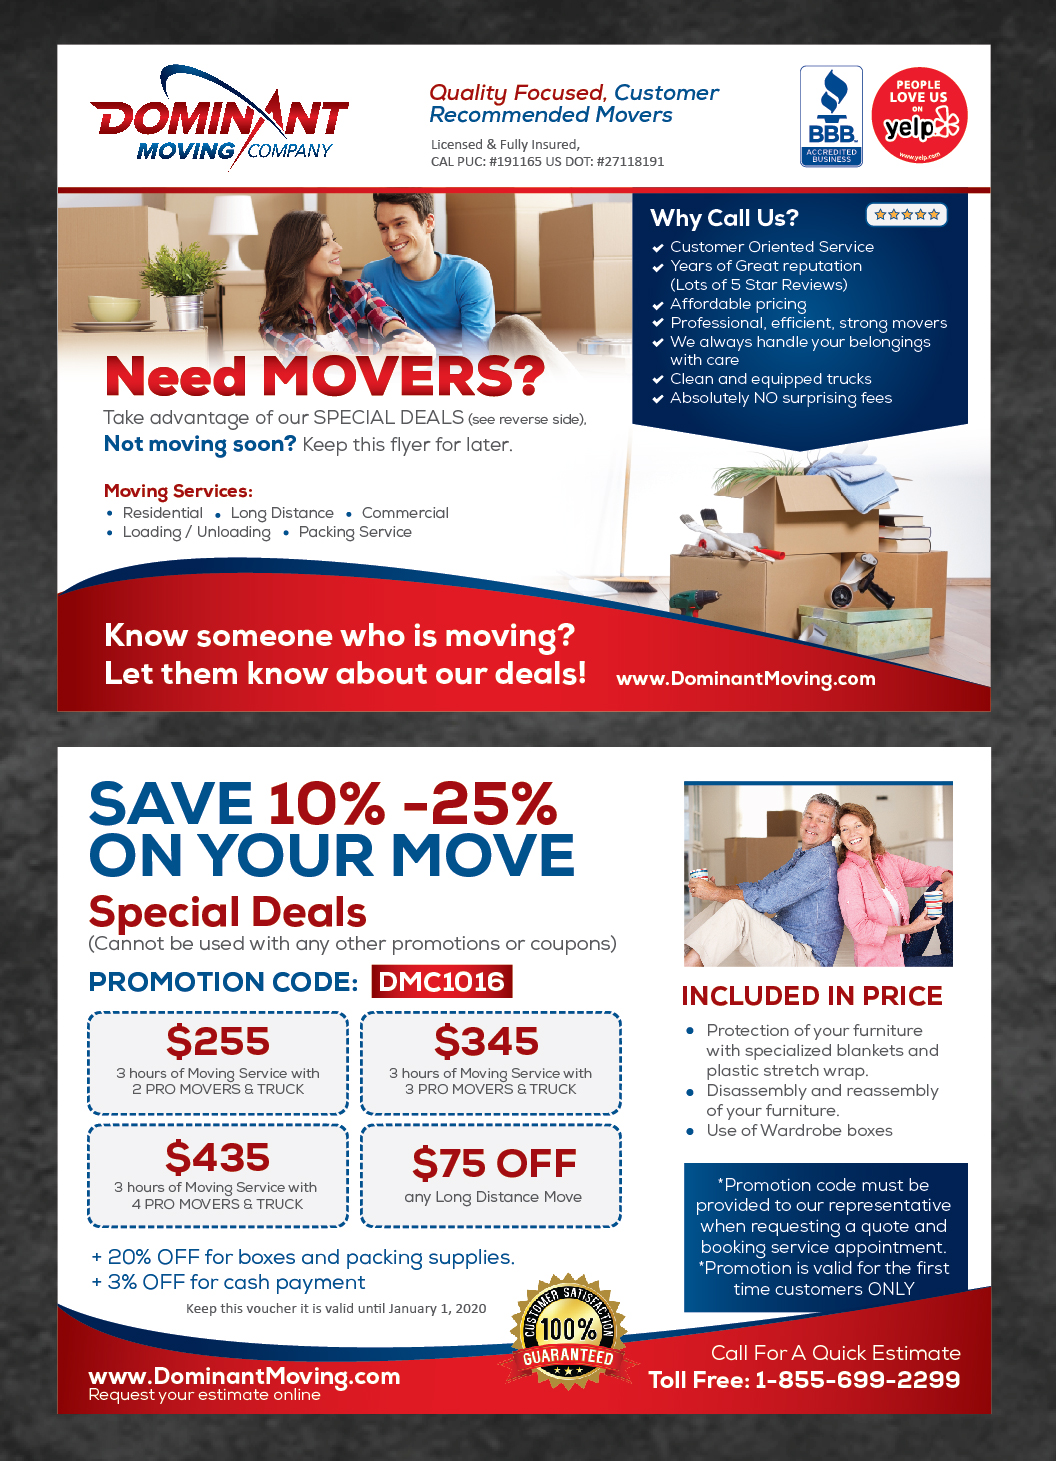 flyer design by achiver for dominant moving systems design 13579116